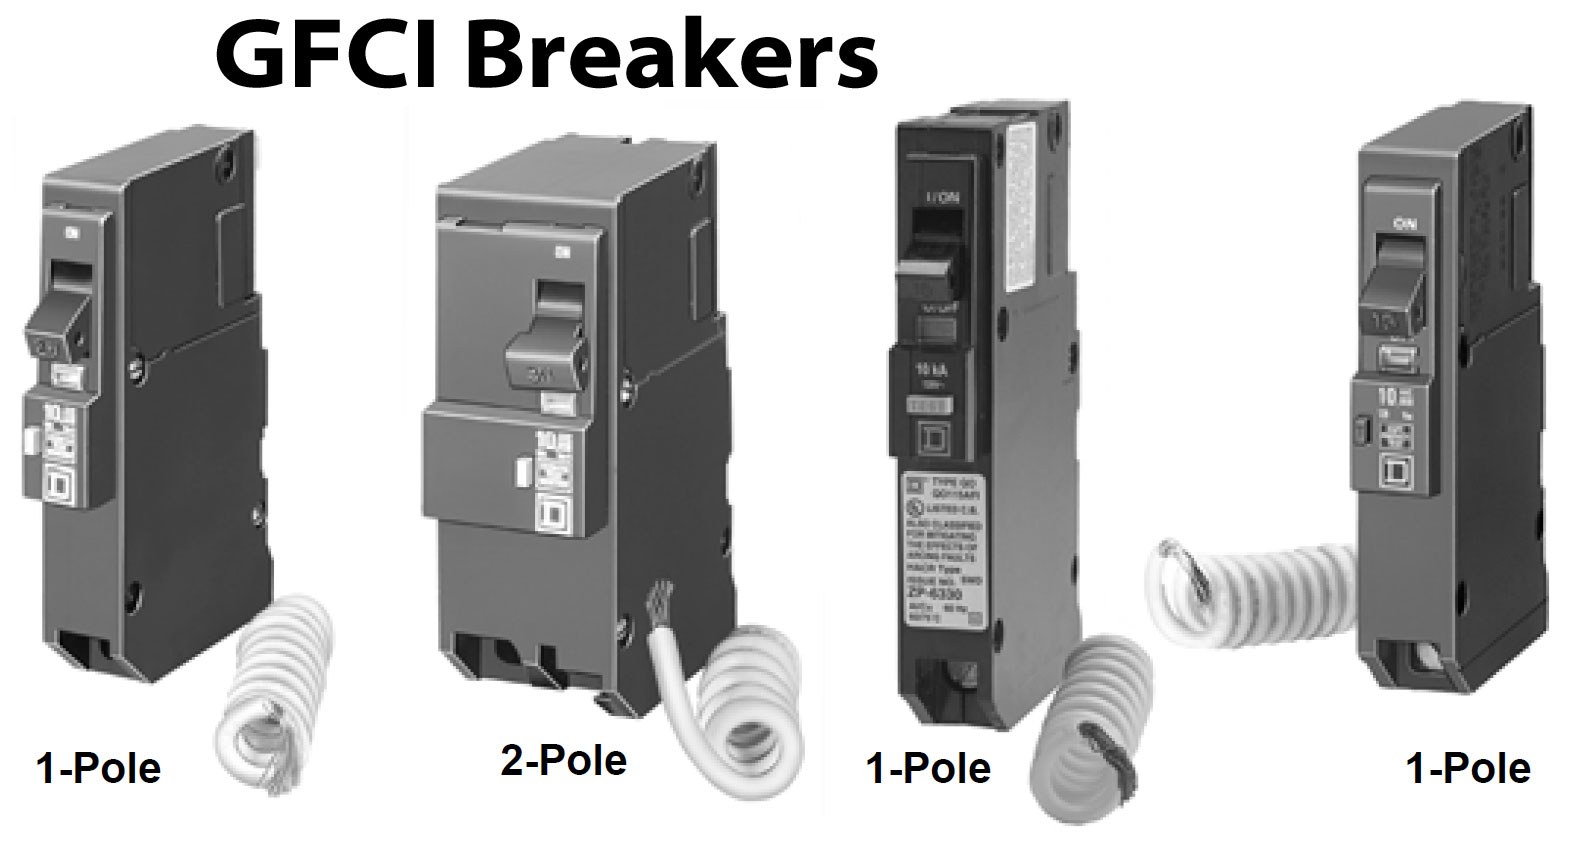 GFCI breakers 1000 how to wire gfci afci circuit breaker 2 pole gfci breaker wiring diagram at virtualis.co